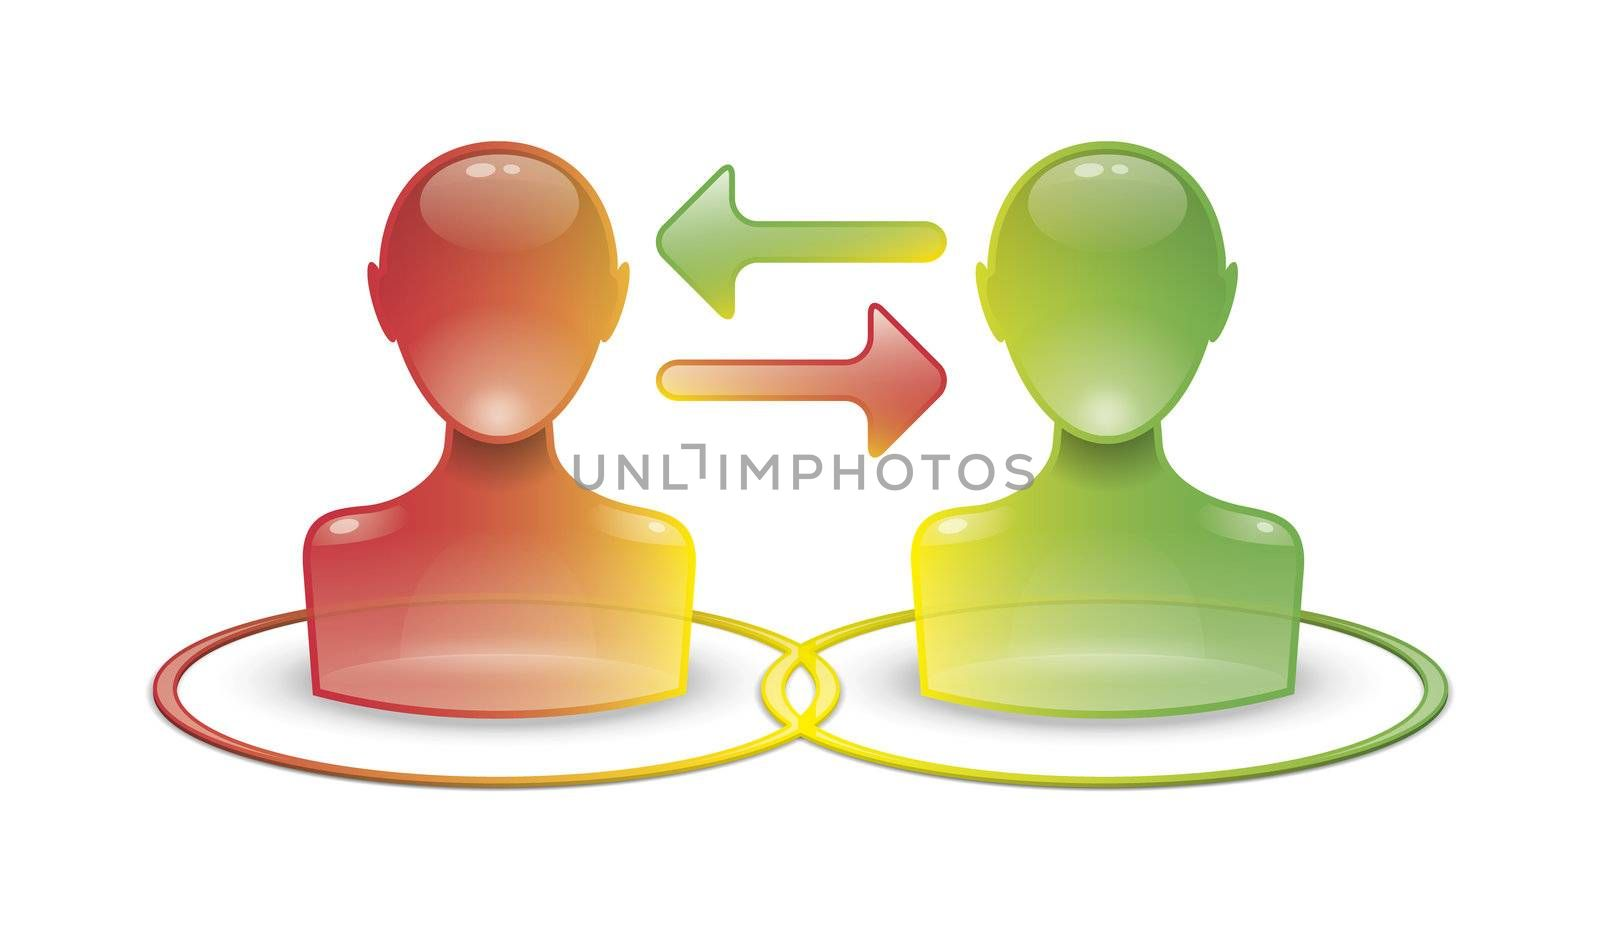 An image of a web communication icon